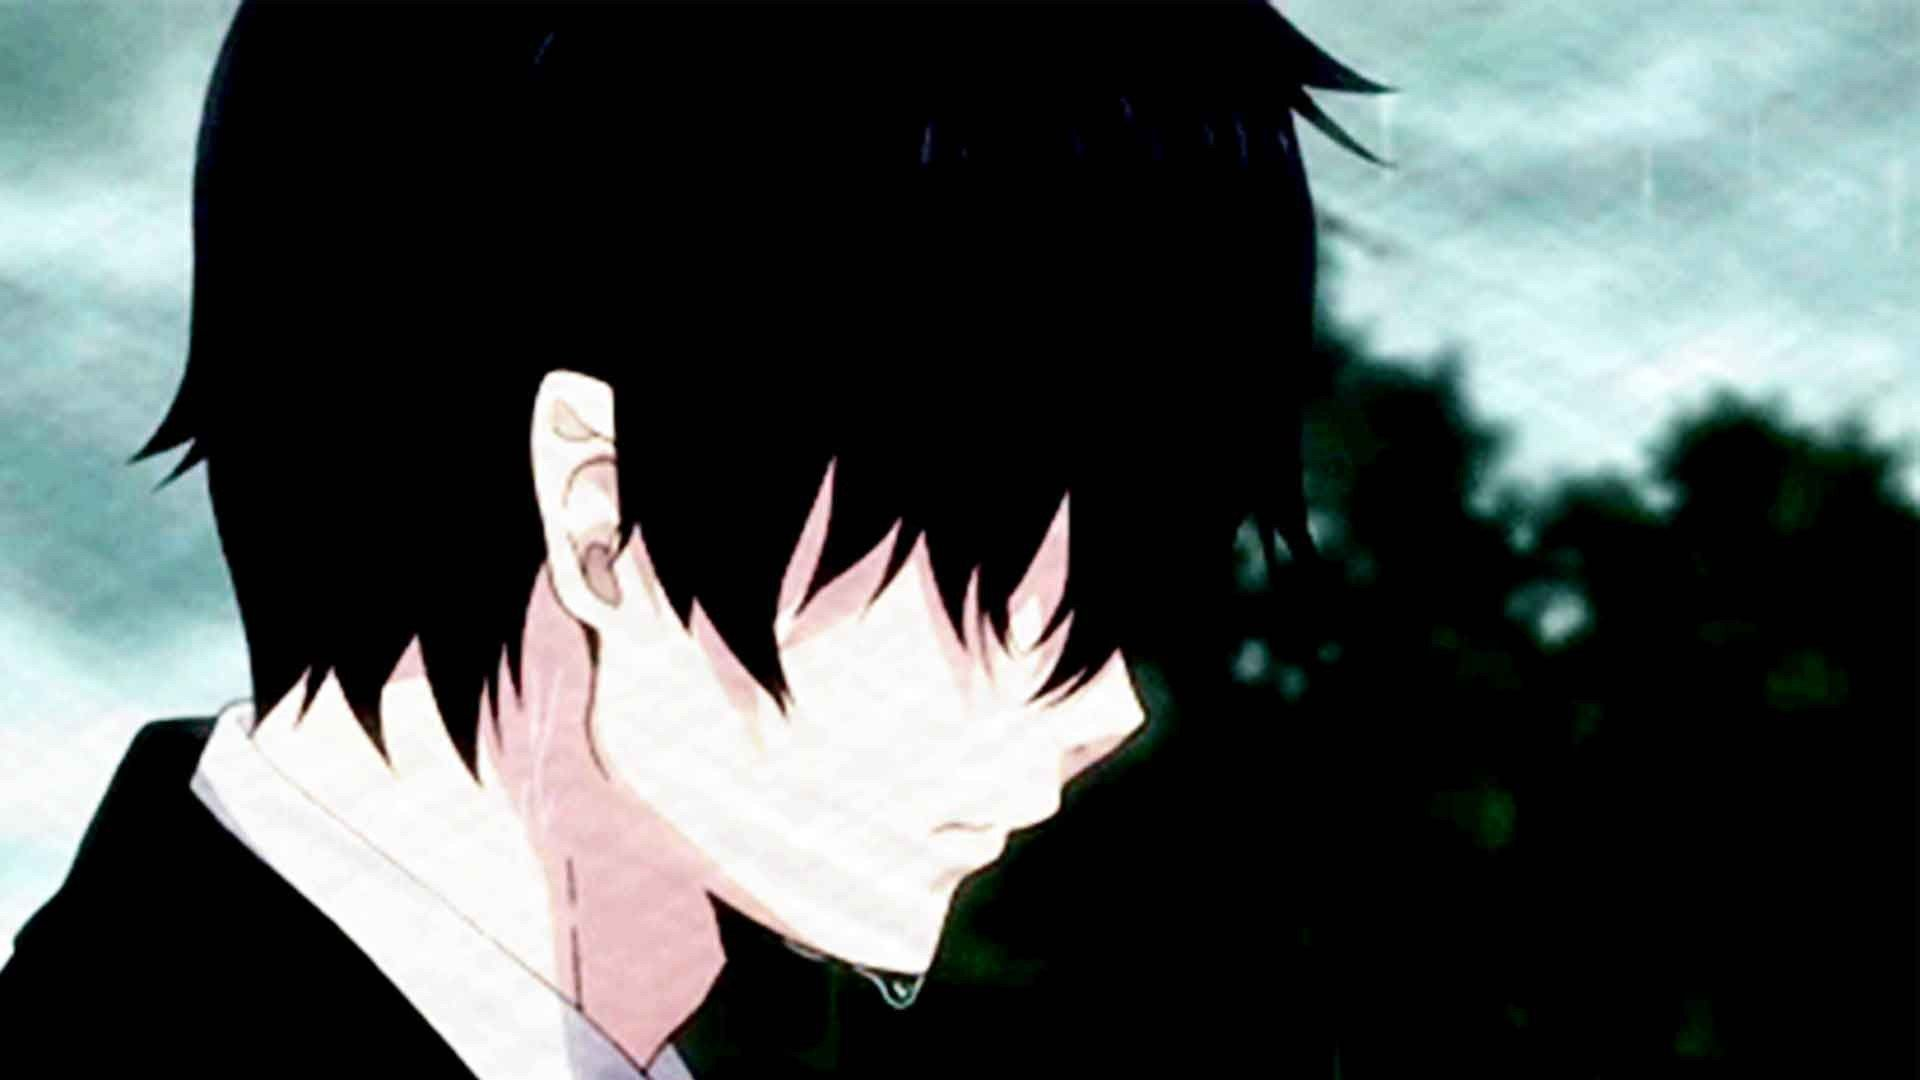 7-most-depressed-anime-characters-and-their-stories